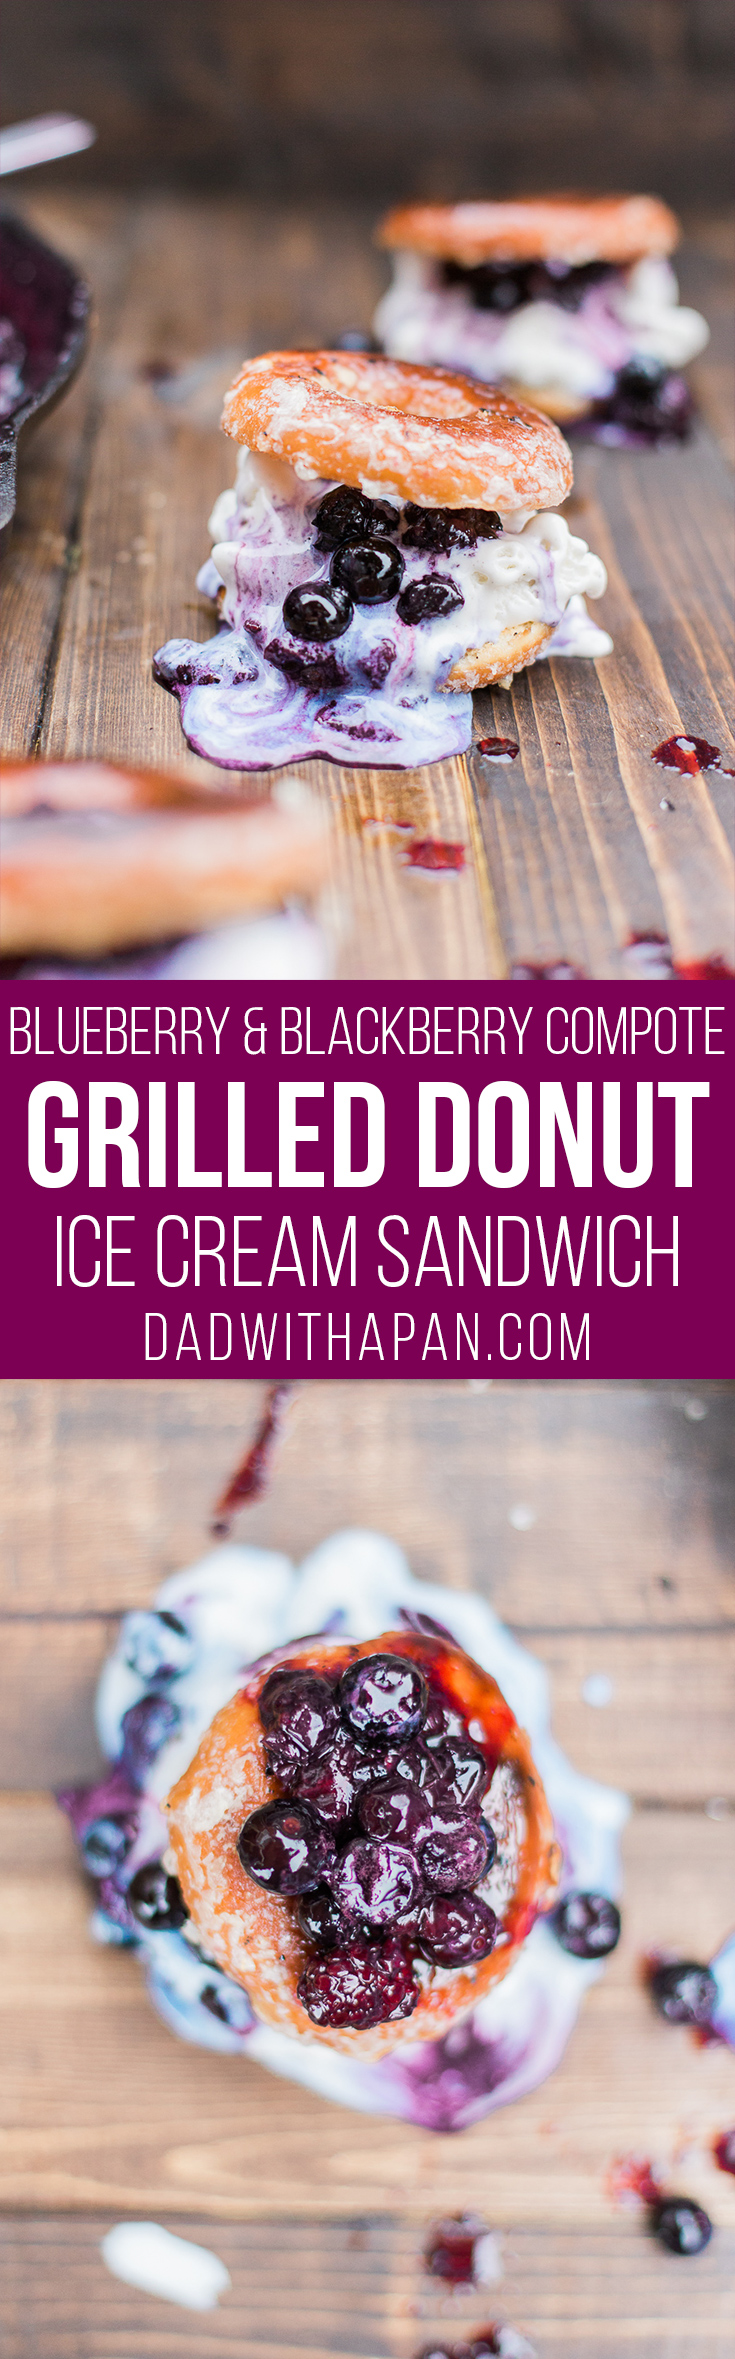 Grilled Donut Ice Cream Sandwich with a warm Blackberry Blueberry Sauce